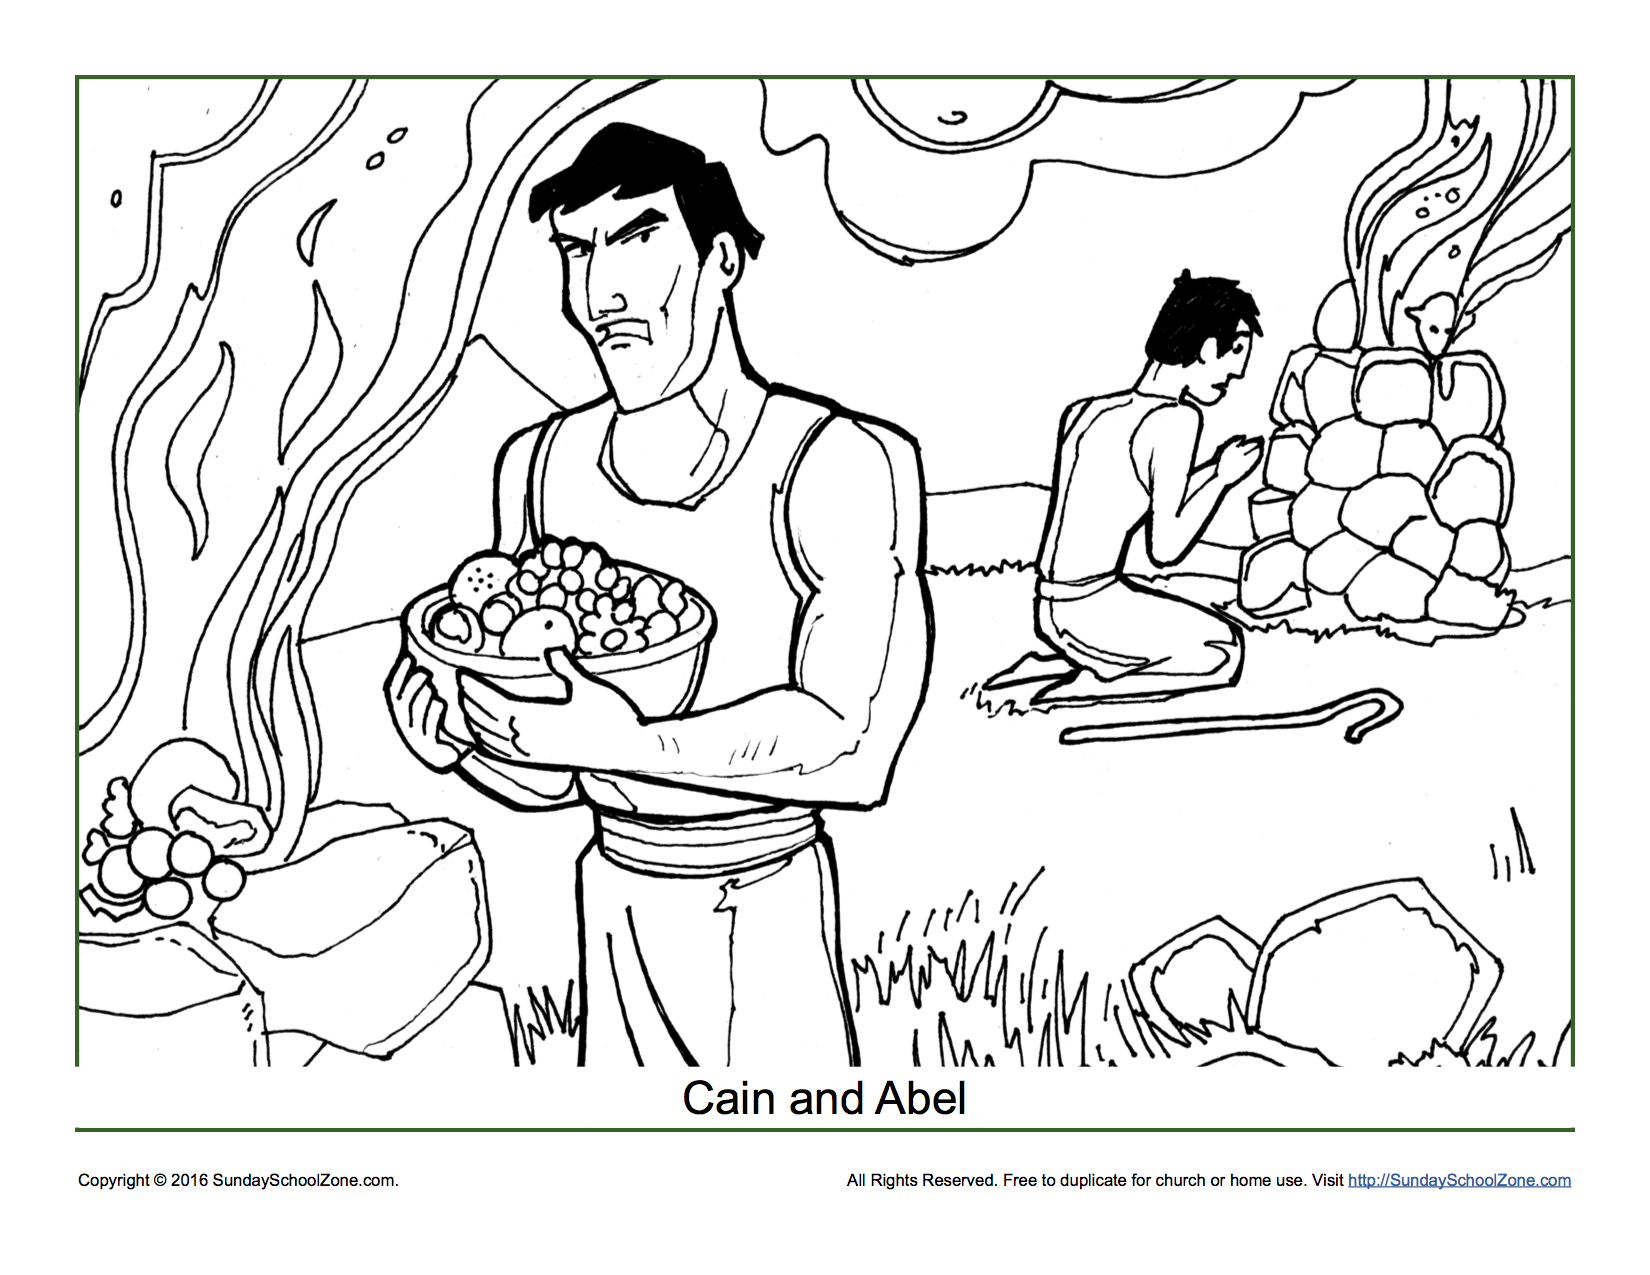 Cain And Abel Bible Story Coloring Pages.